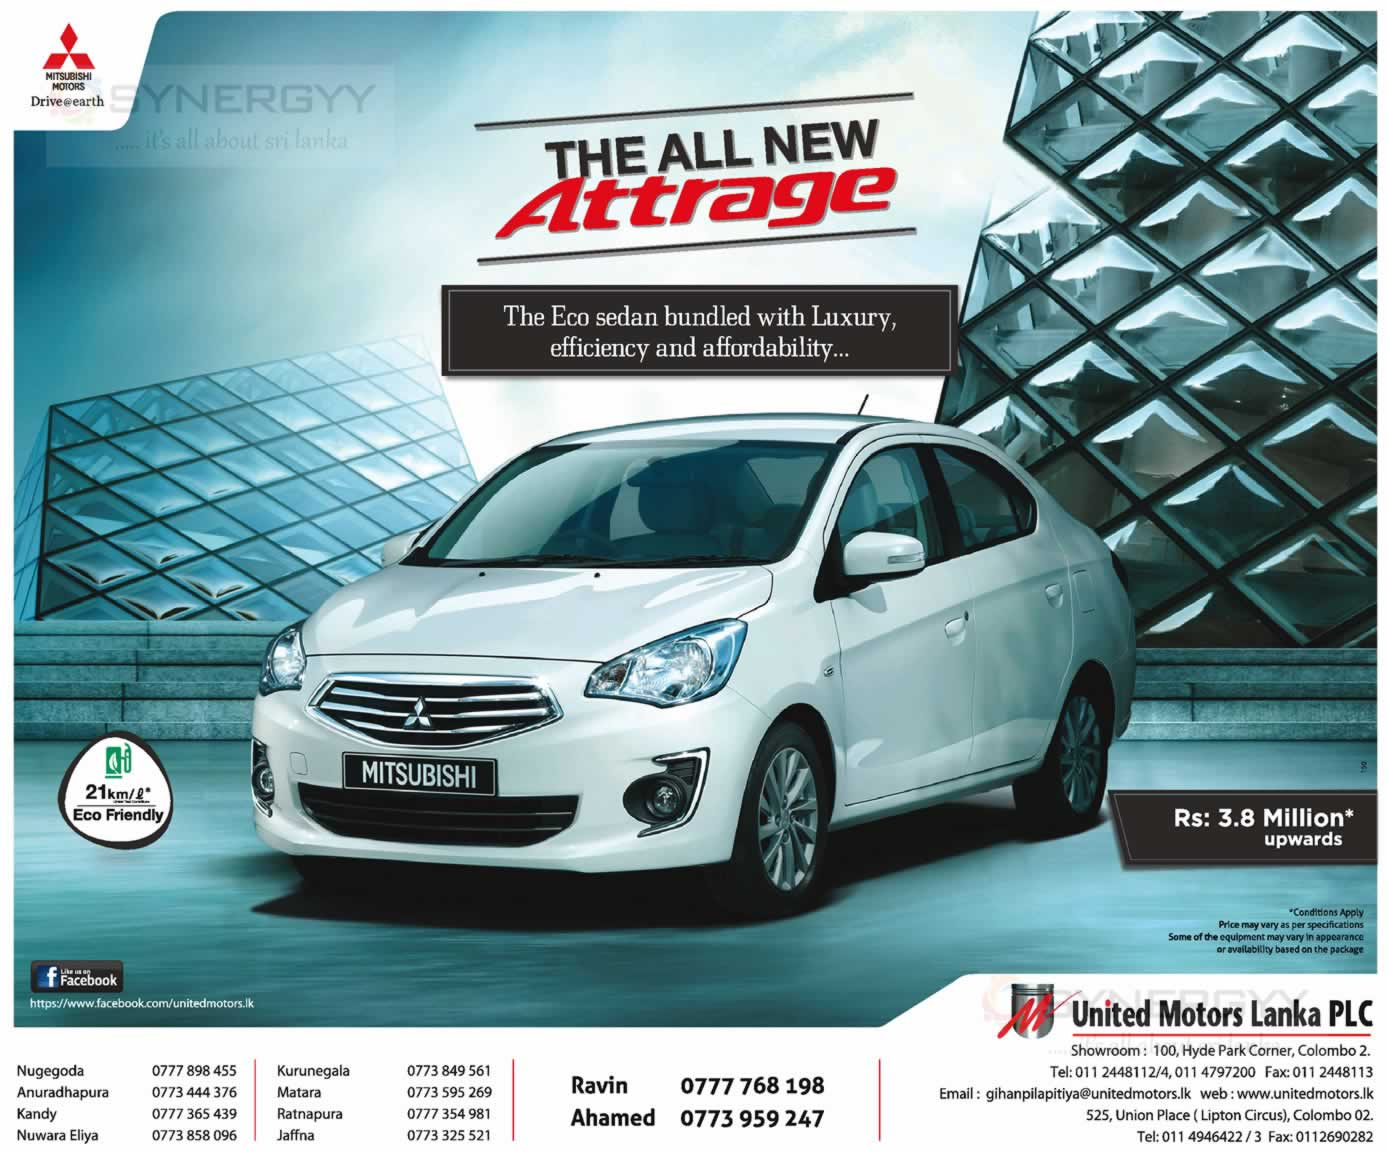 Attrage price in Sri Lanka – Rs. 3.8 Million Upwards – March 2014